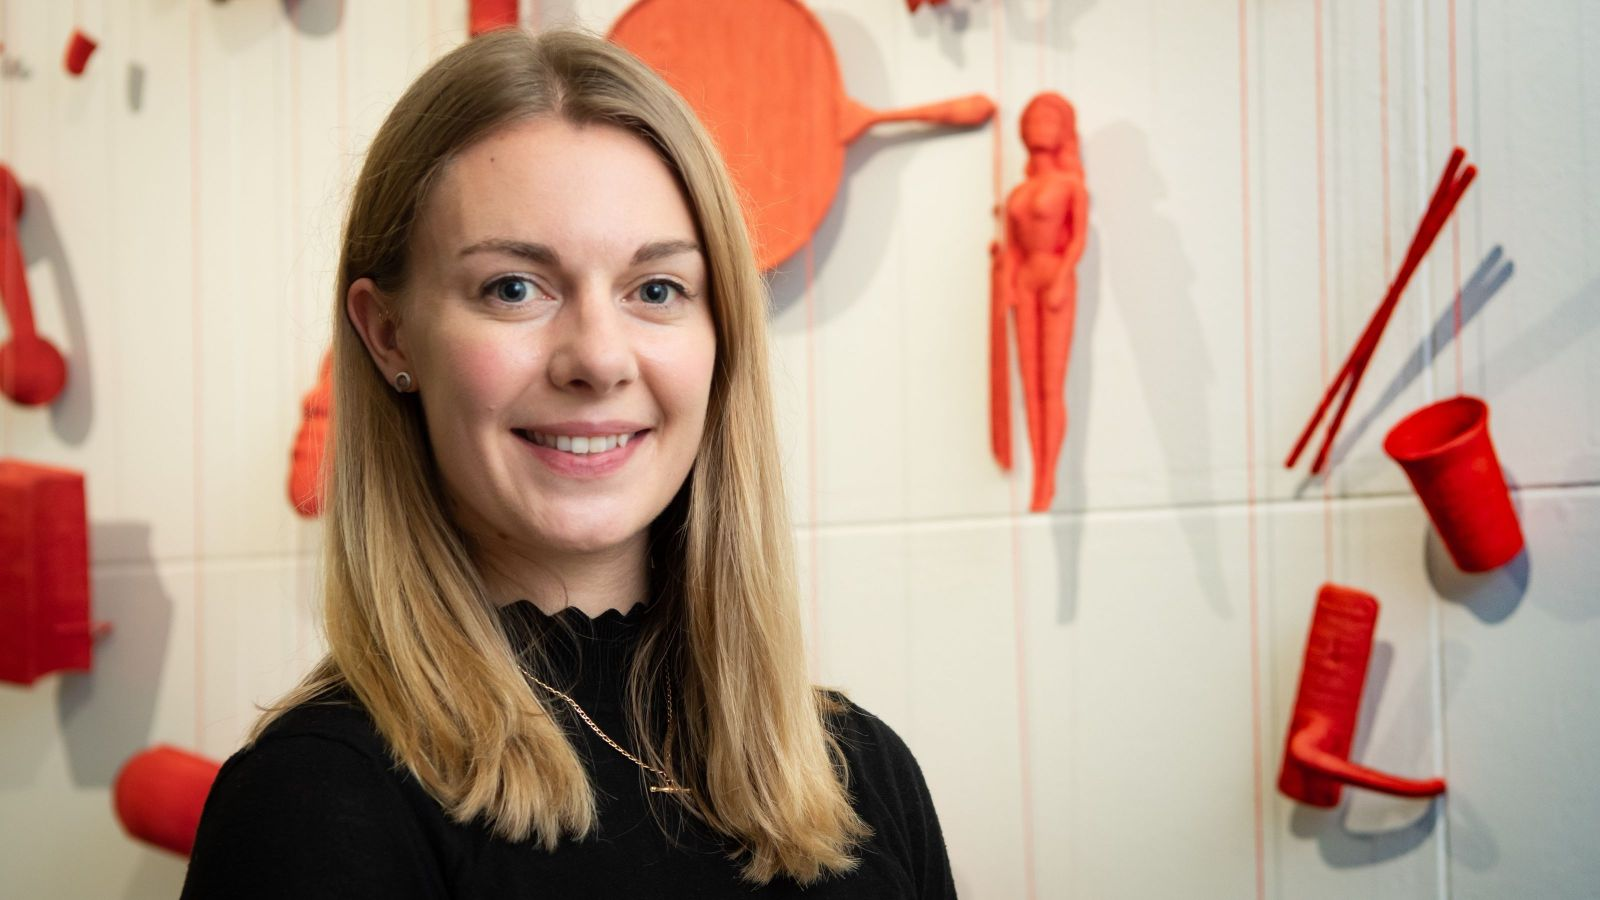 PhD Candidate Molly Fisher posing for a photo in front of a red art installation